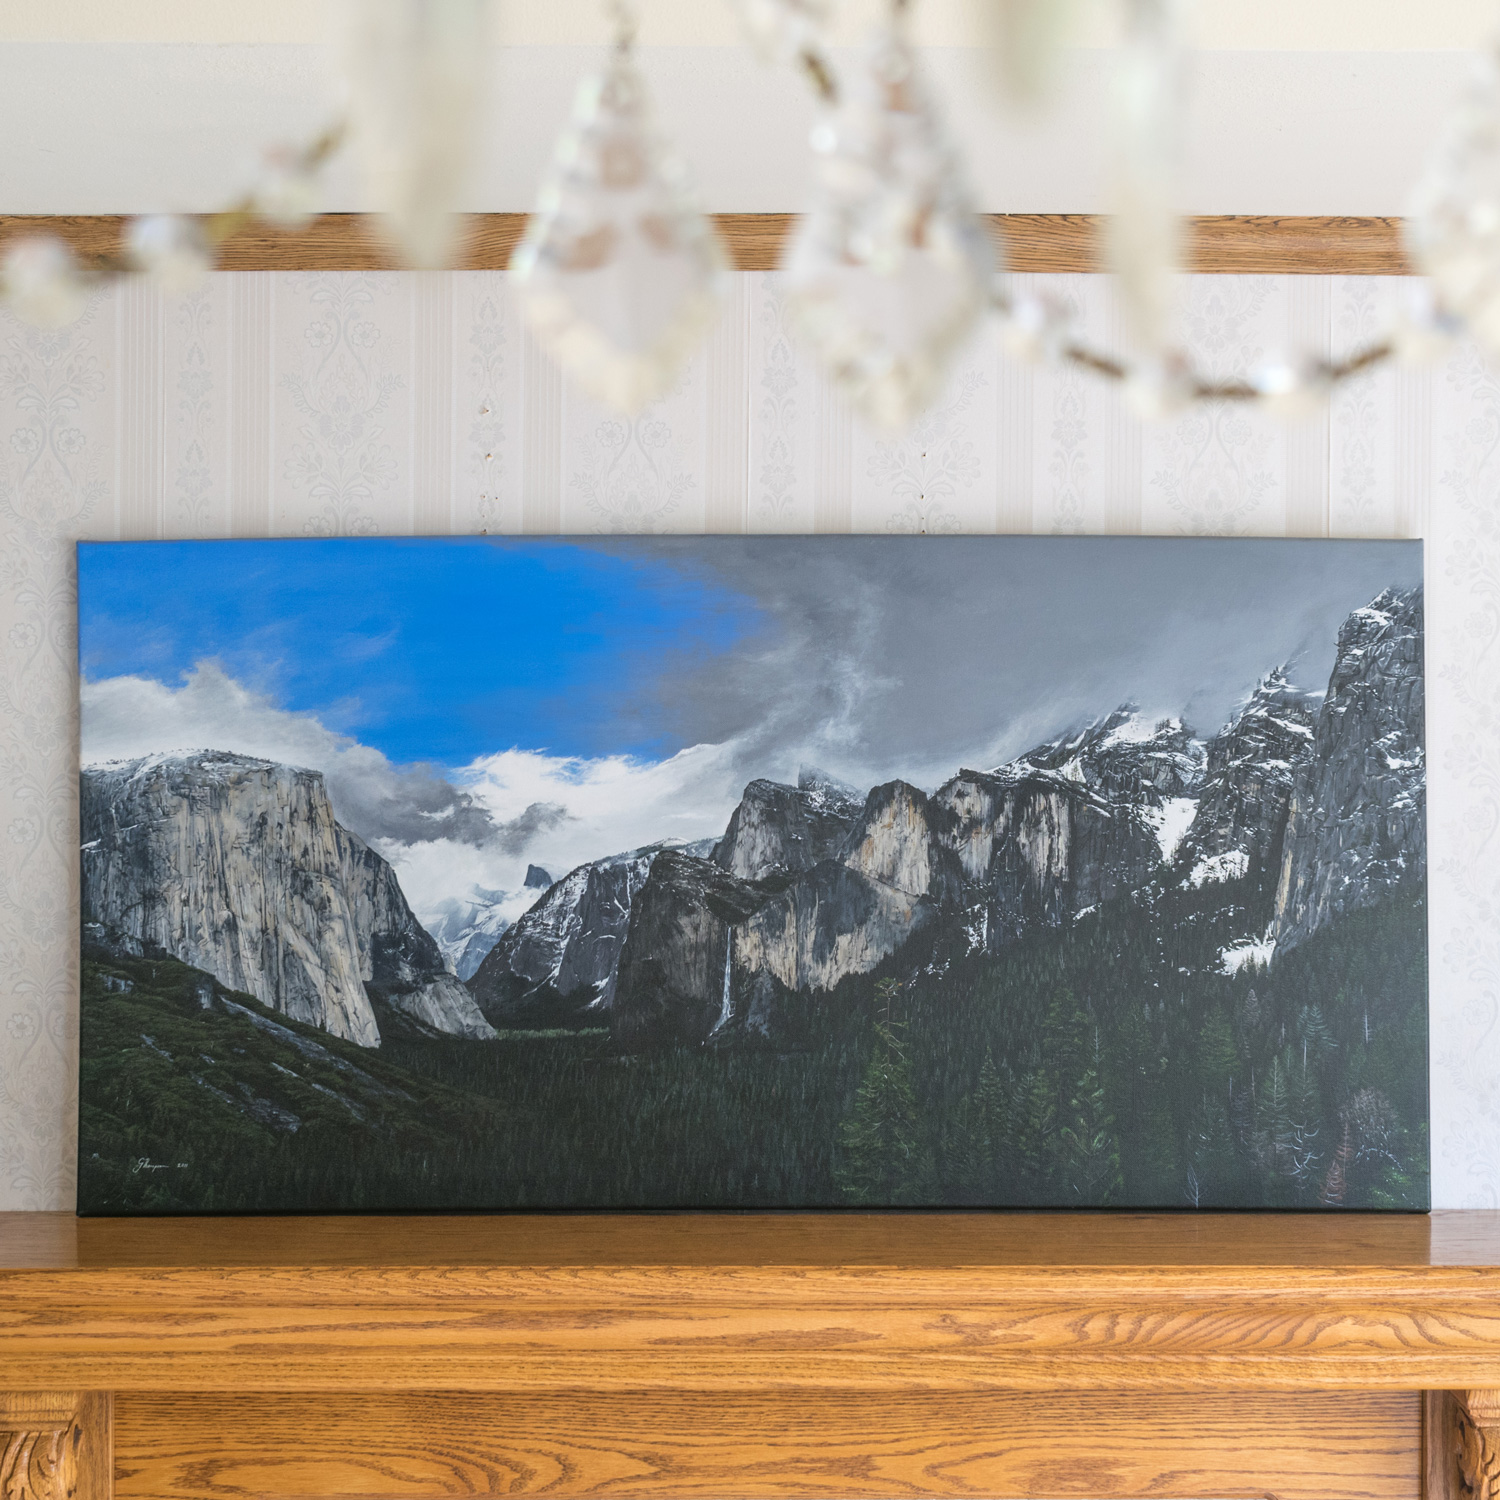 Yosemite, 2011, Acrylic on canvas, 1016mm x 609mm (40 in x 24 in)